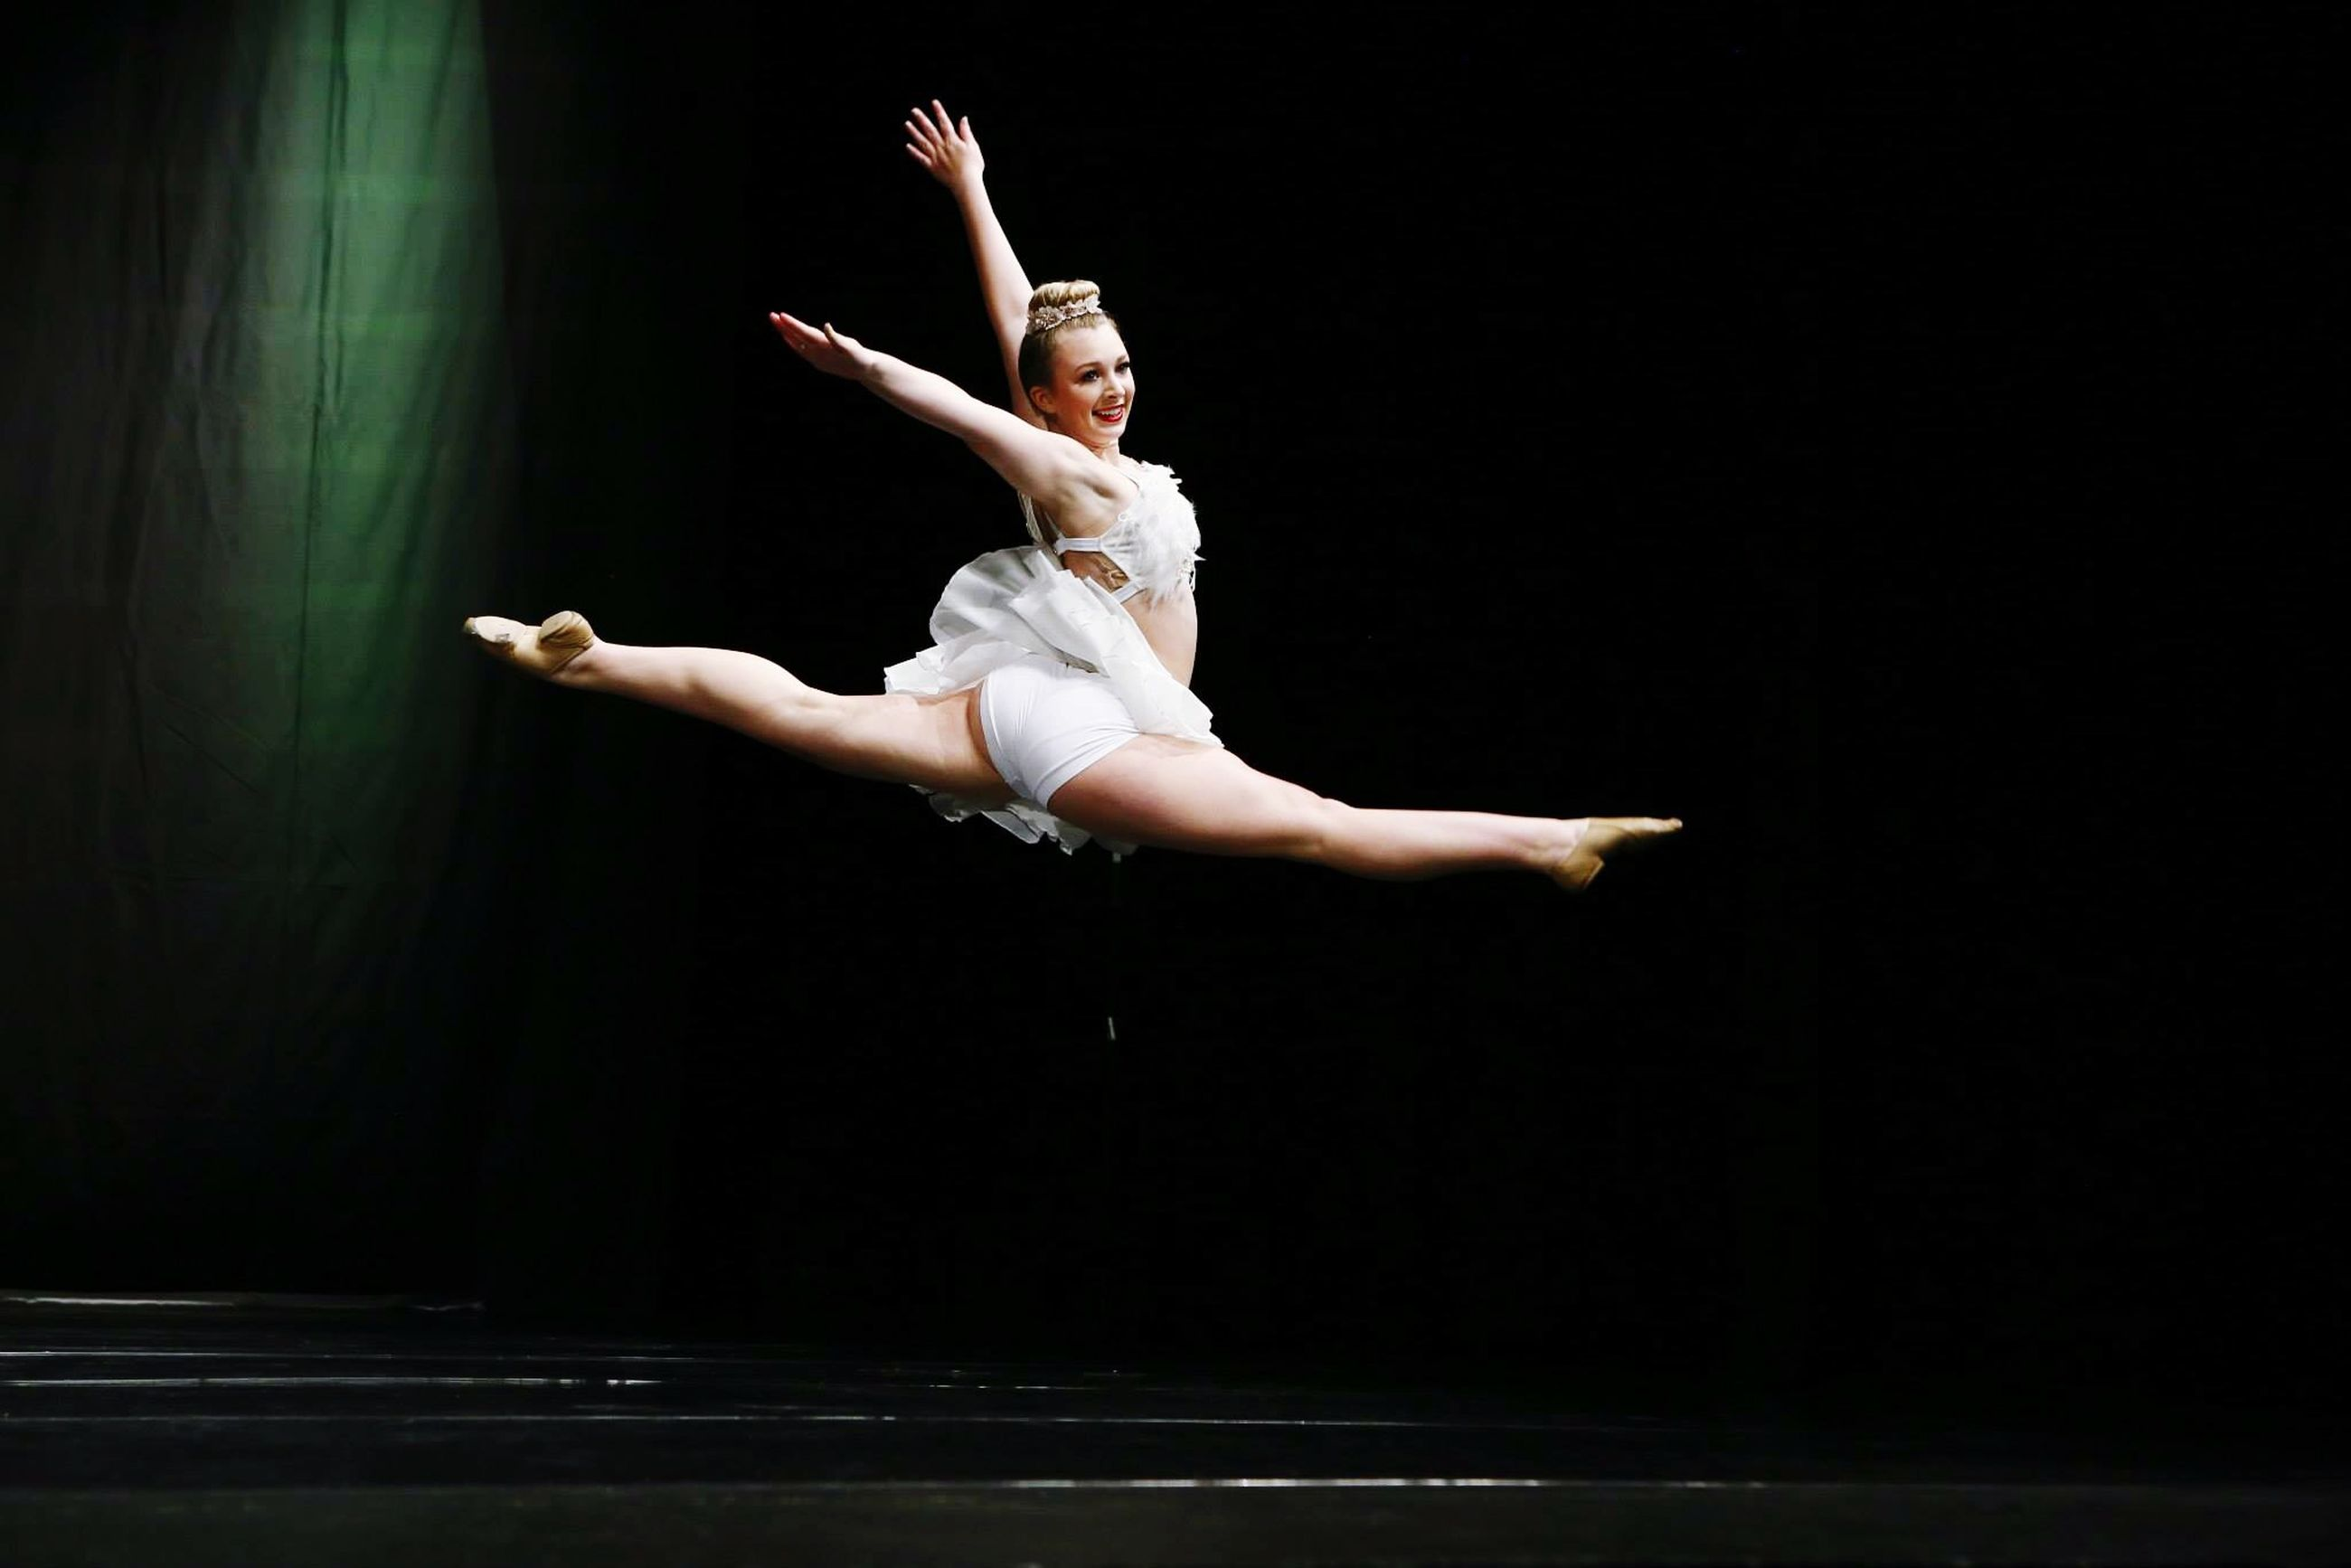 night, full length, mid-air, lifestyles, jumping, leisure activity, copy space, side view, person, skill, arms raised, indoors, motion, arms outstretched, performance, holding, vitality